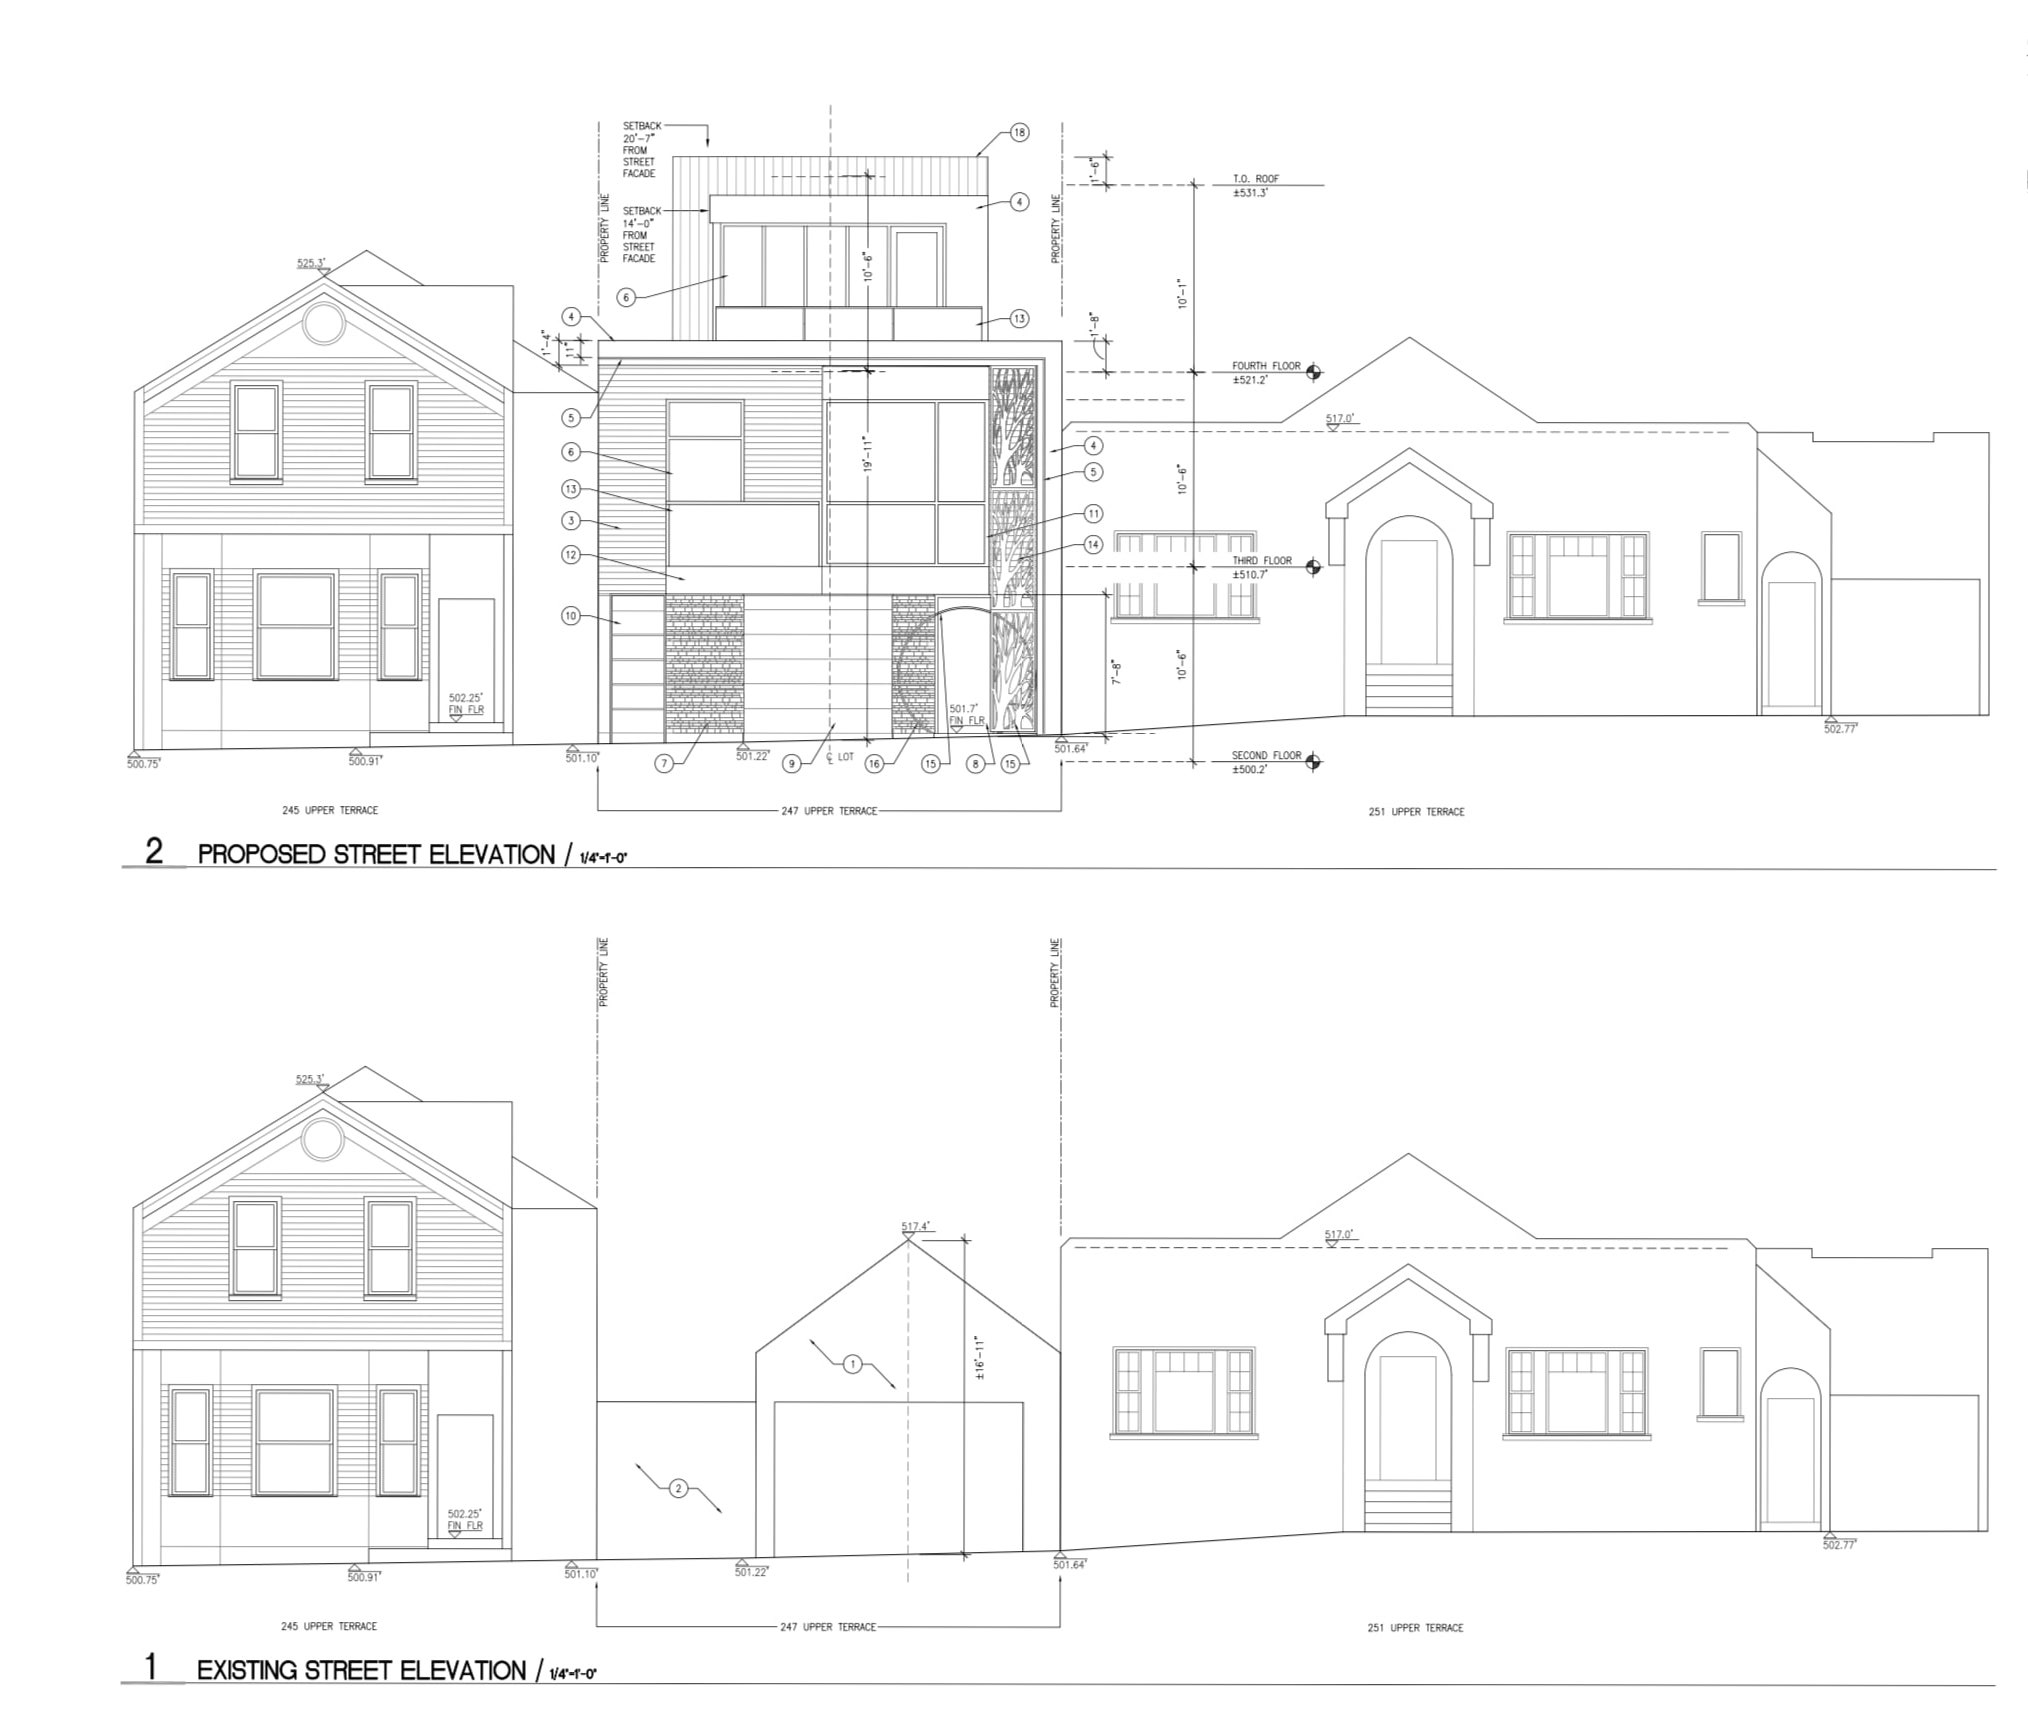 247 Upper Terrace Street Elevation